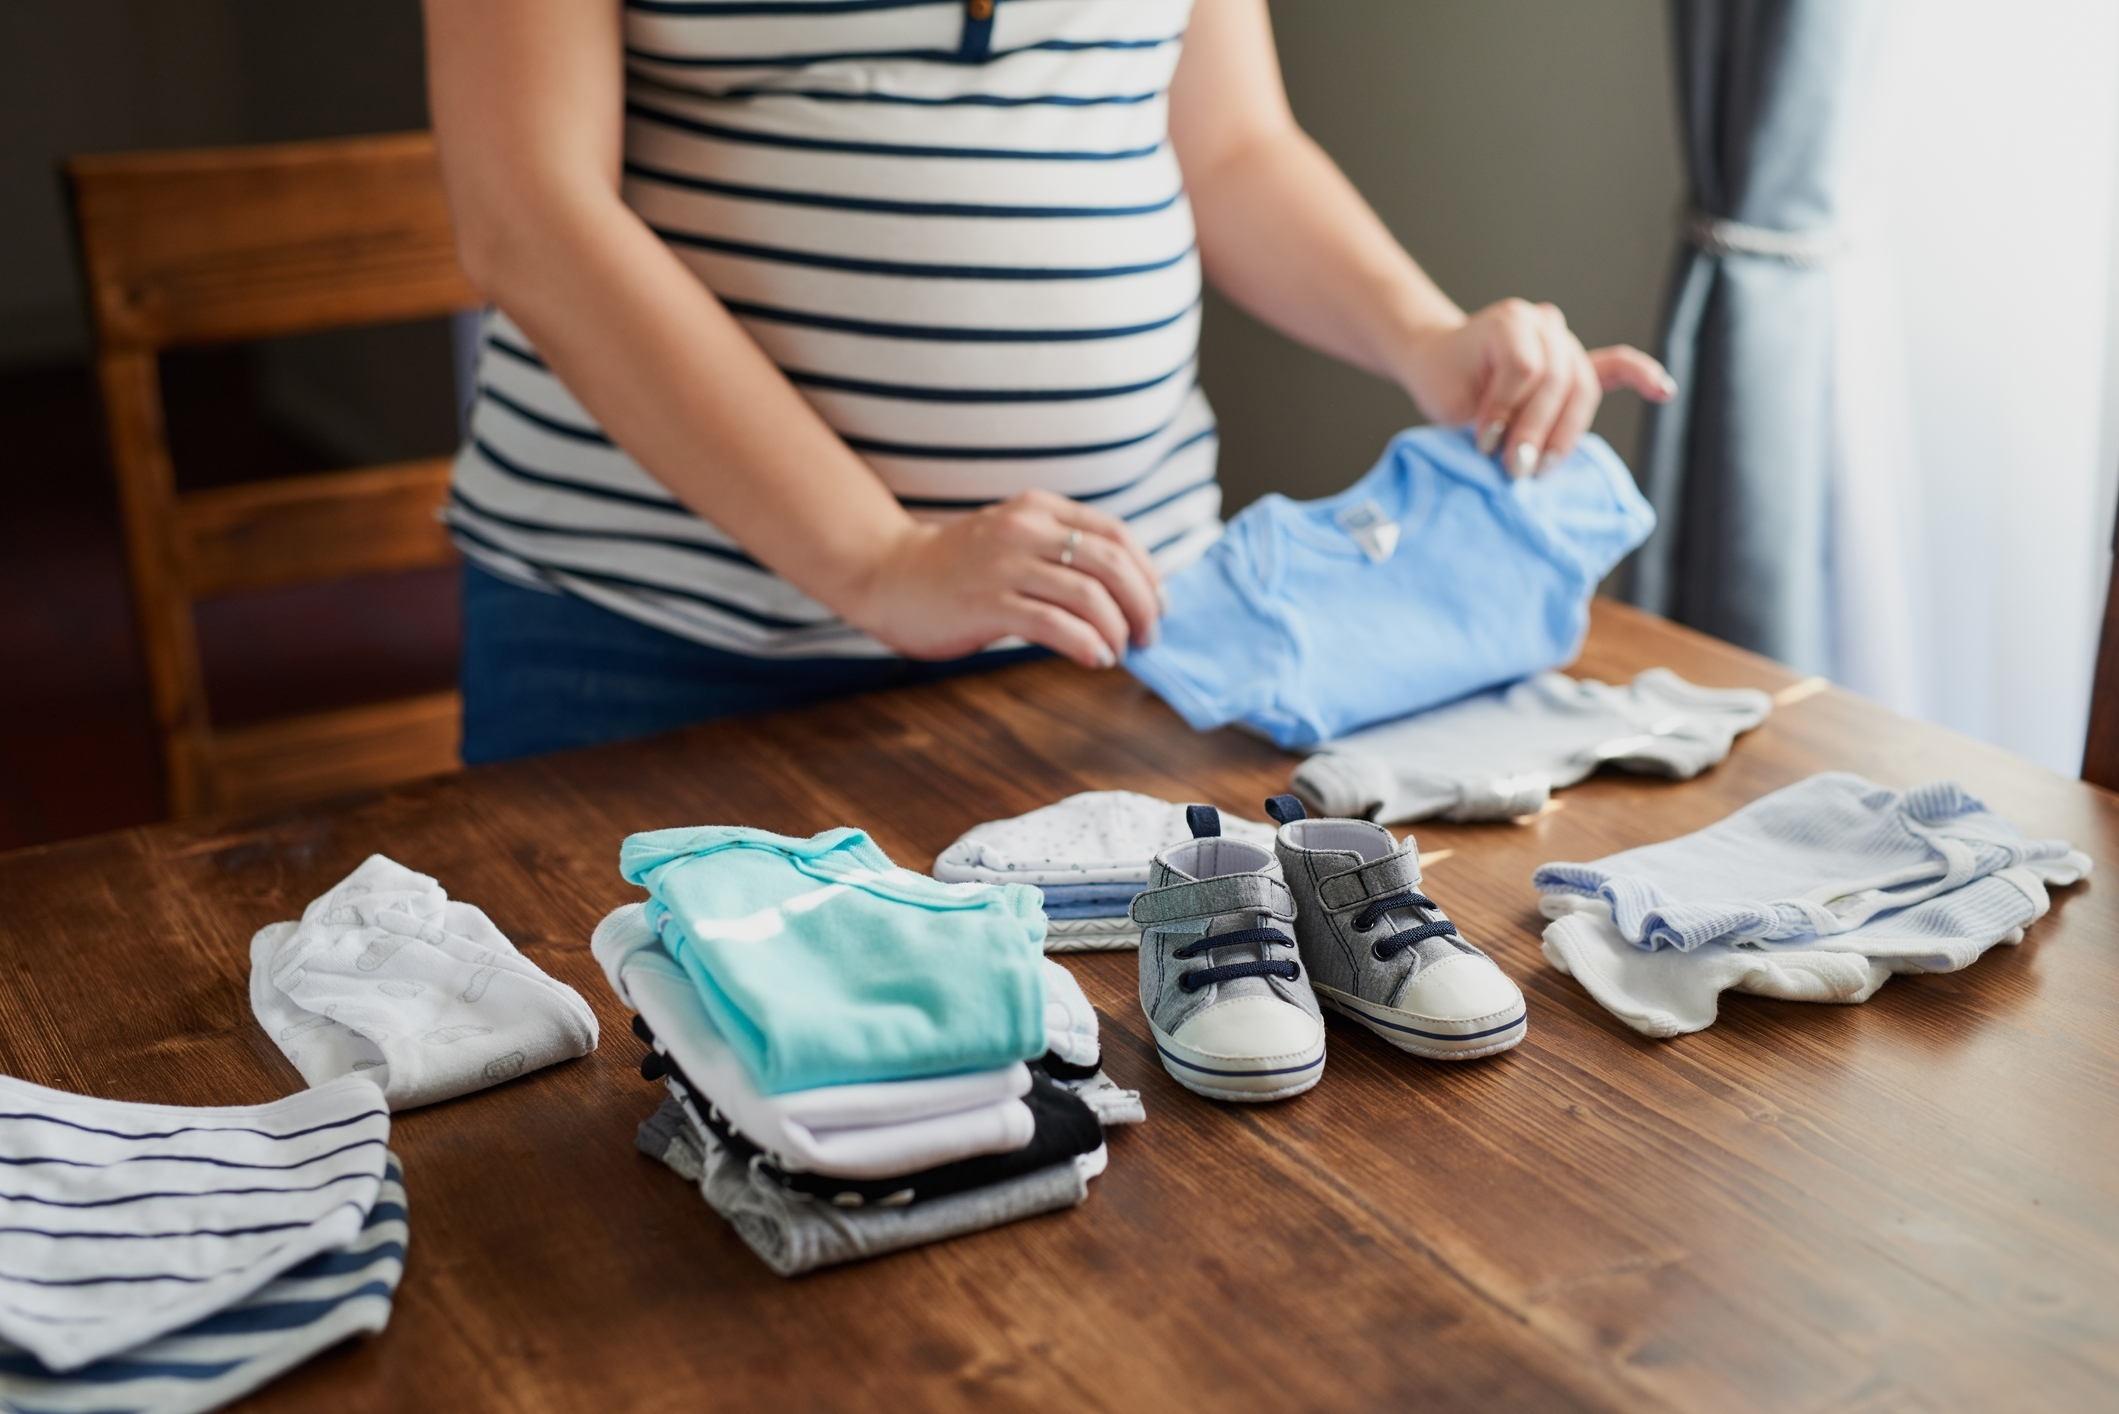 Baby Clothing Dropshippers: A Guide for Starting a Business